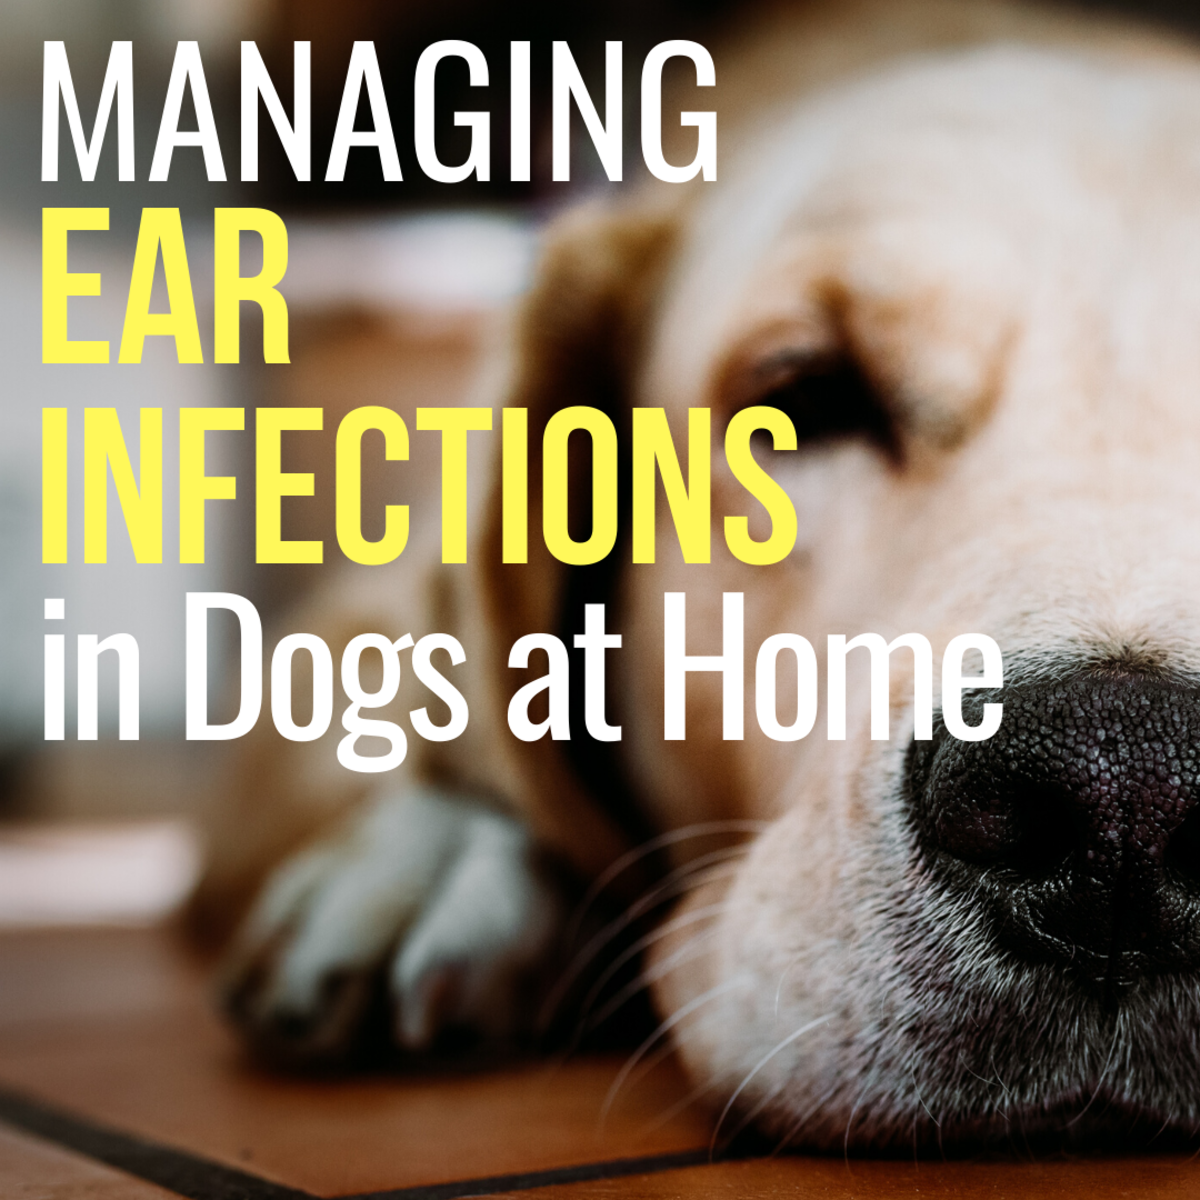 Tips for Managing Dog Ear Infections at Home